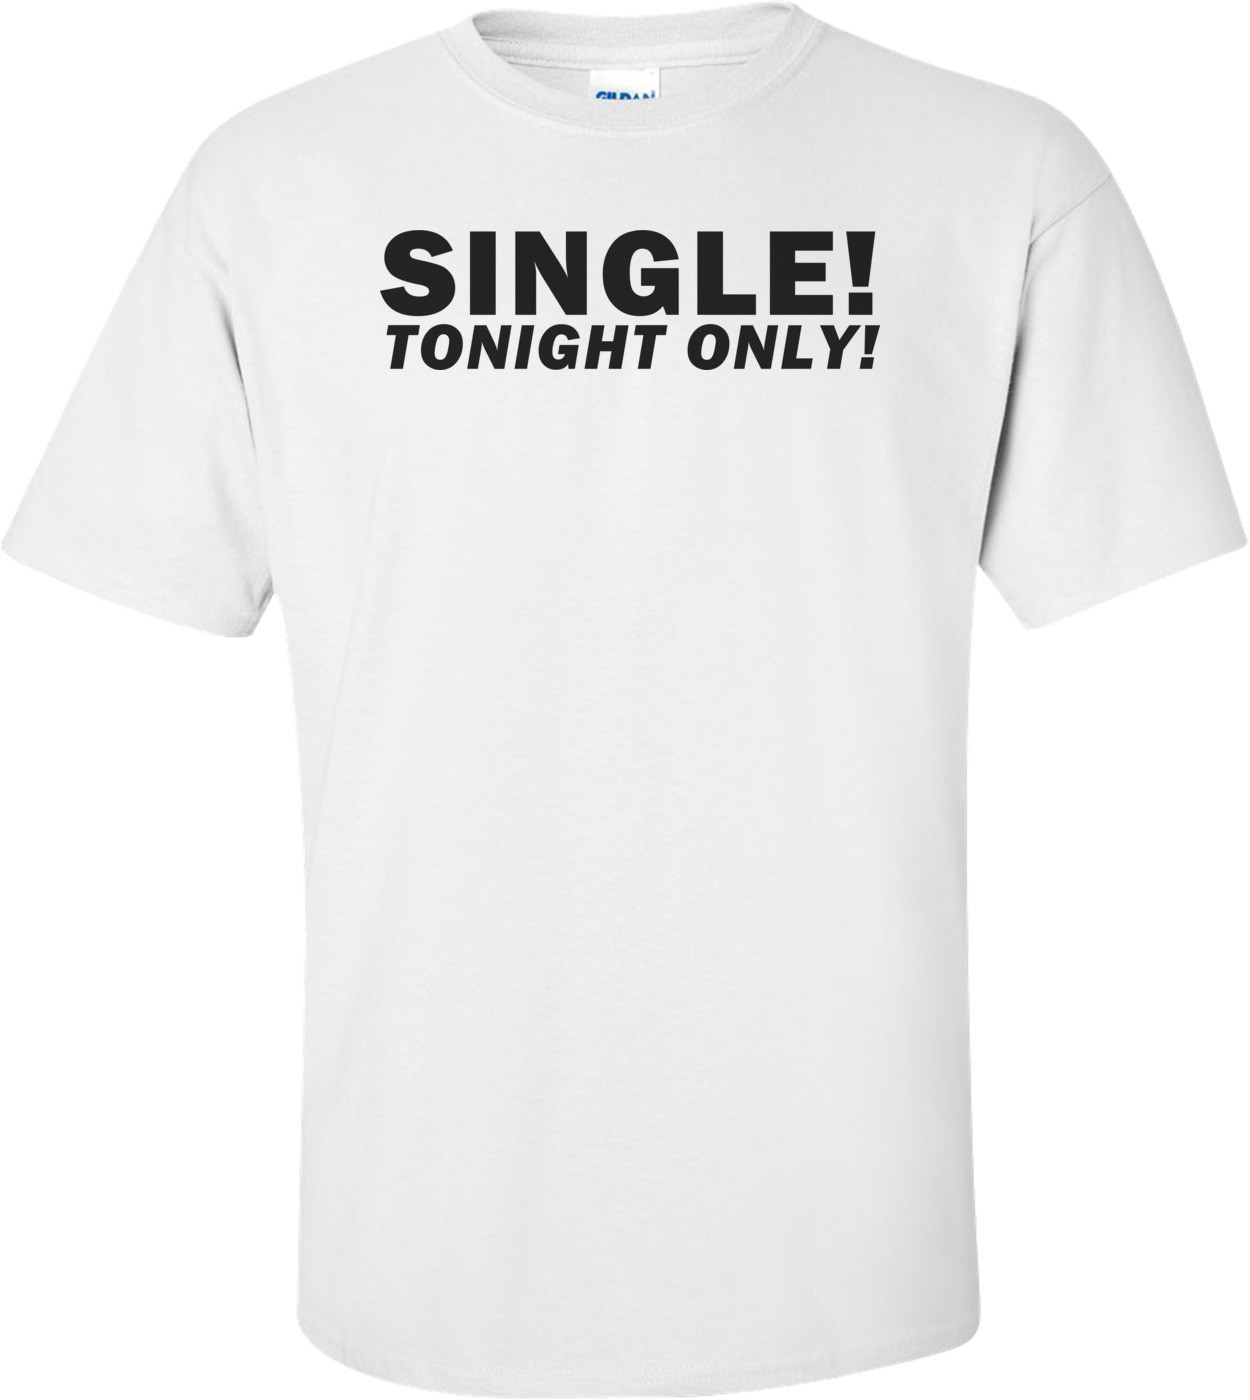 Single! Tonight Only! Funny Shirt